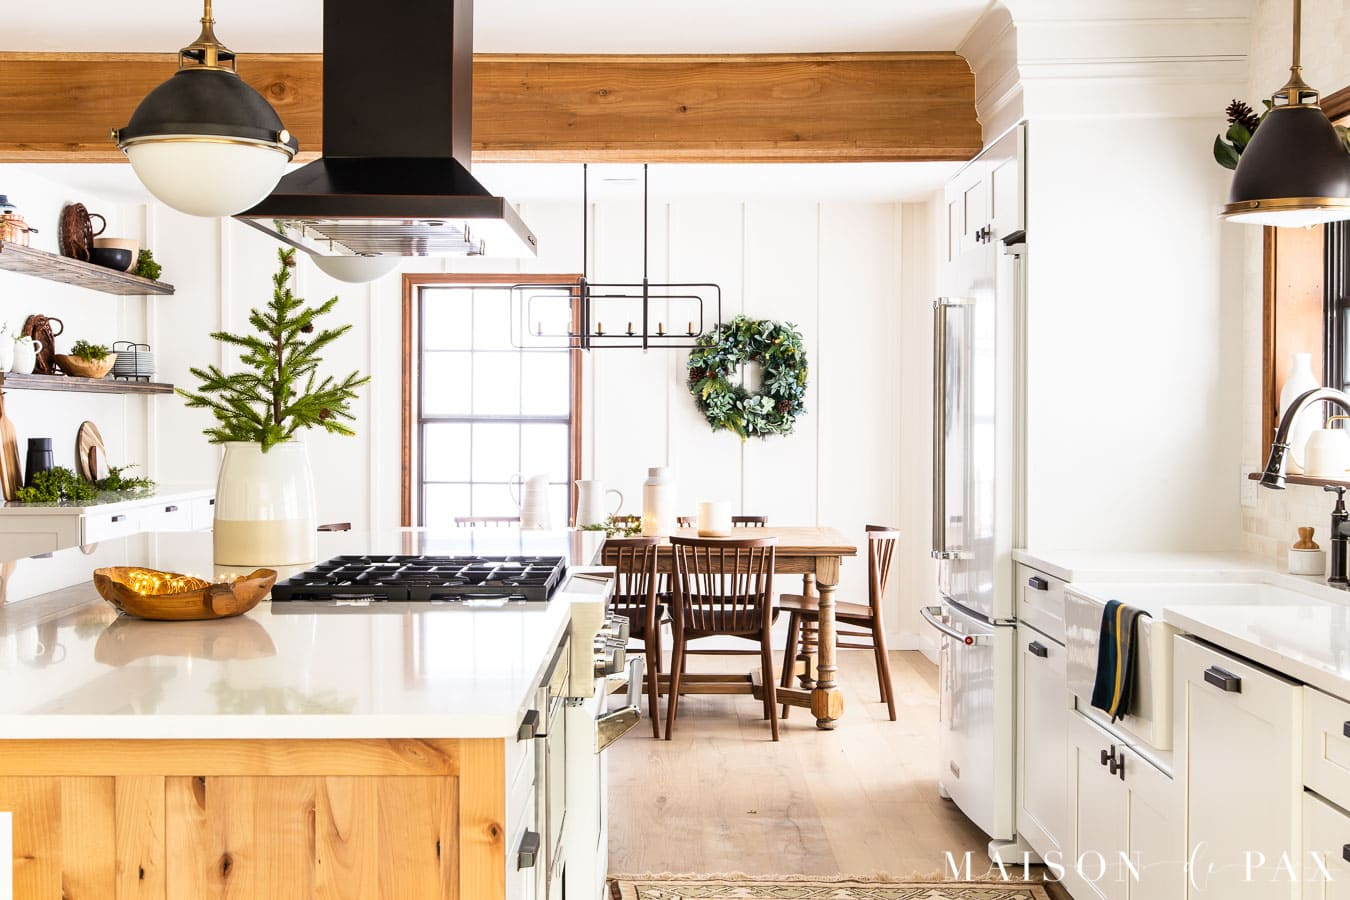 white and wood kitchen with holiday greenery | Maison de Pax